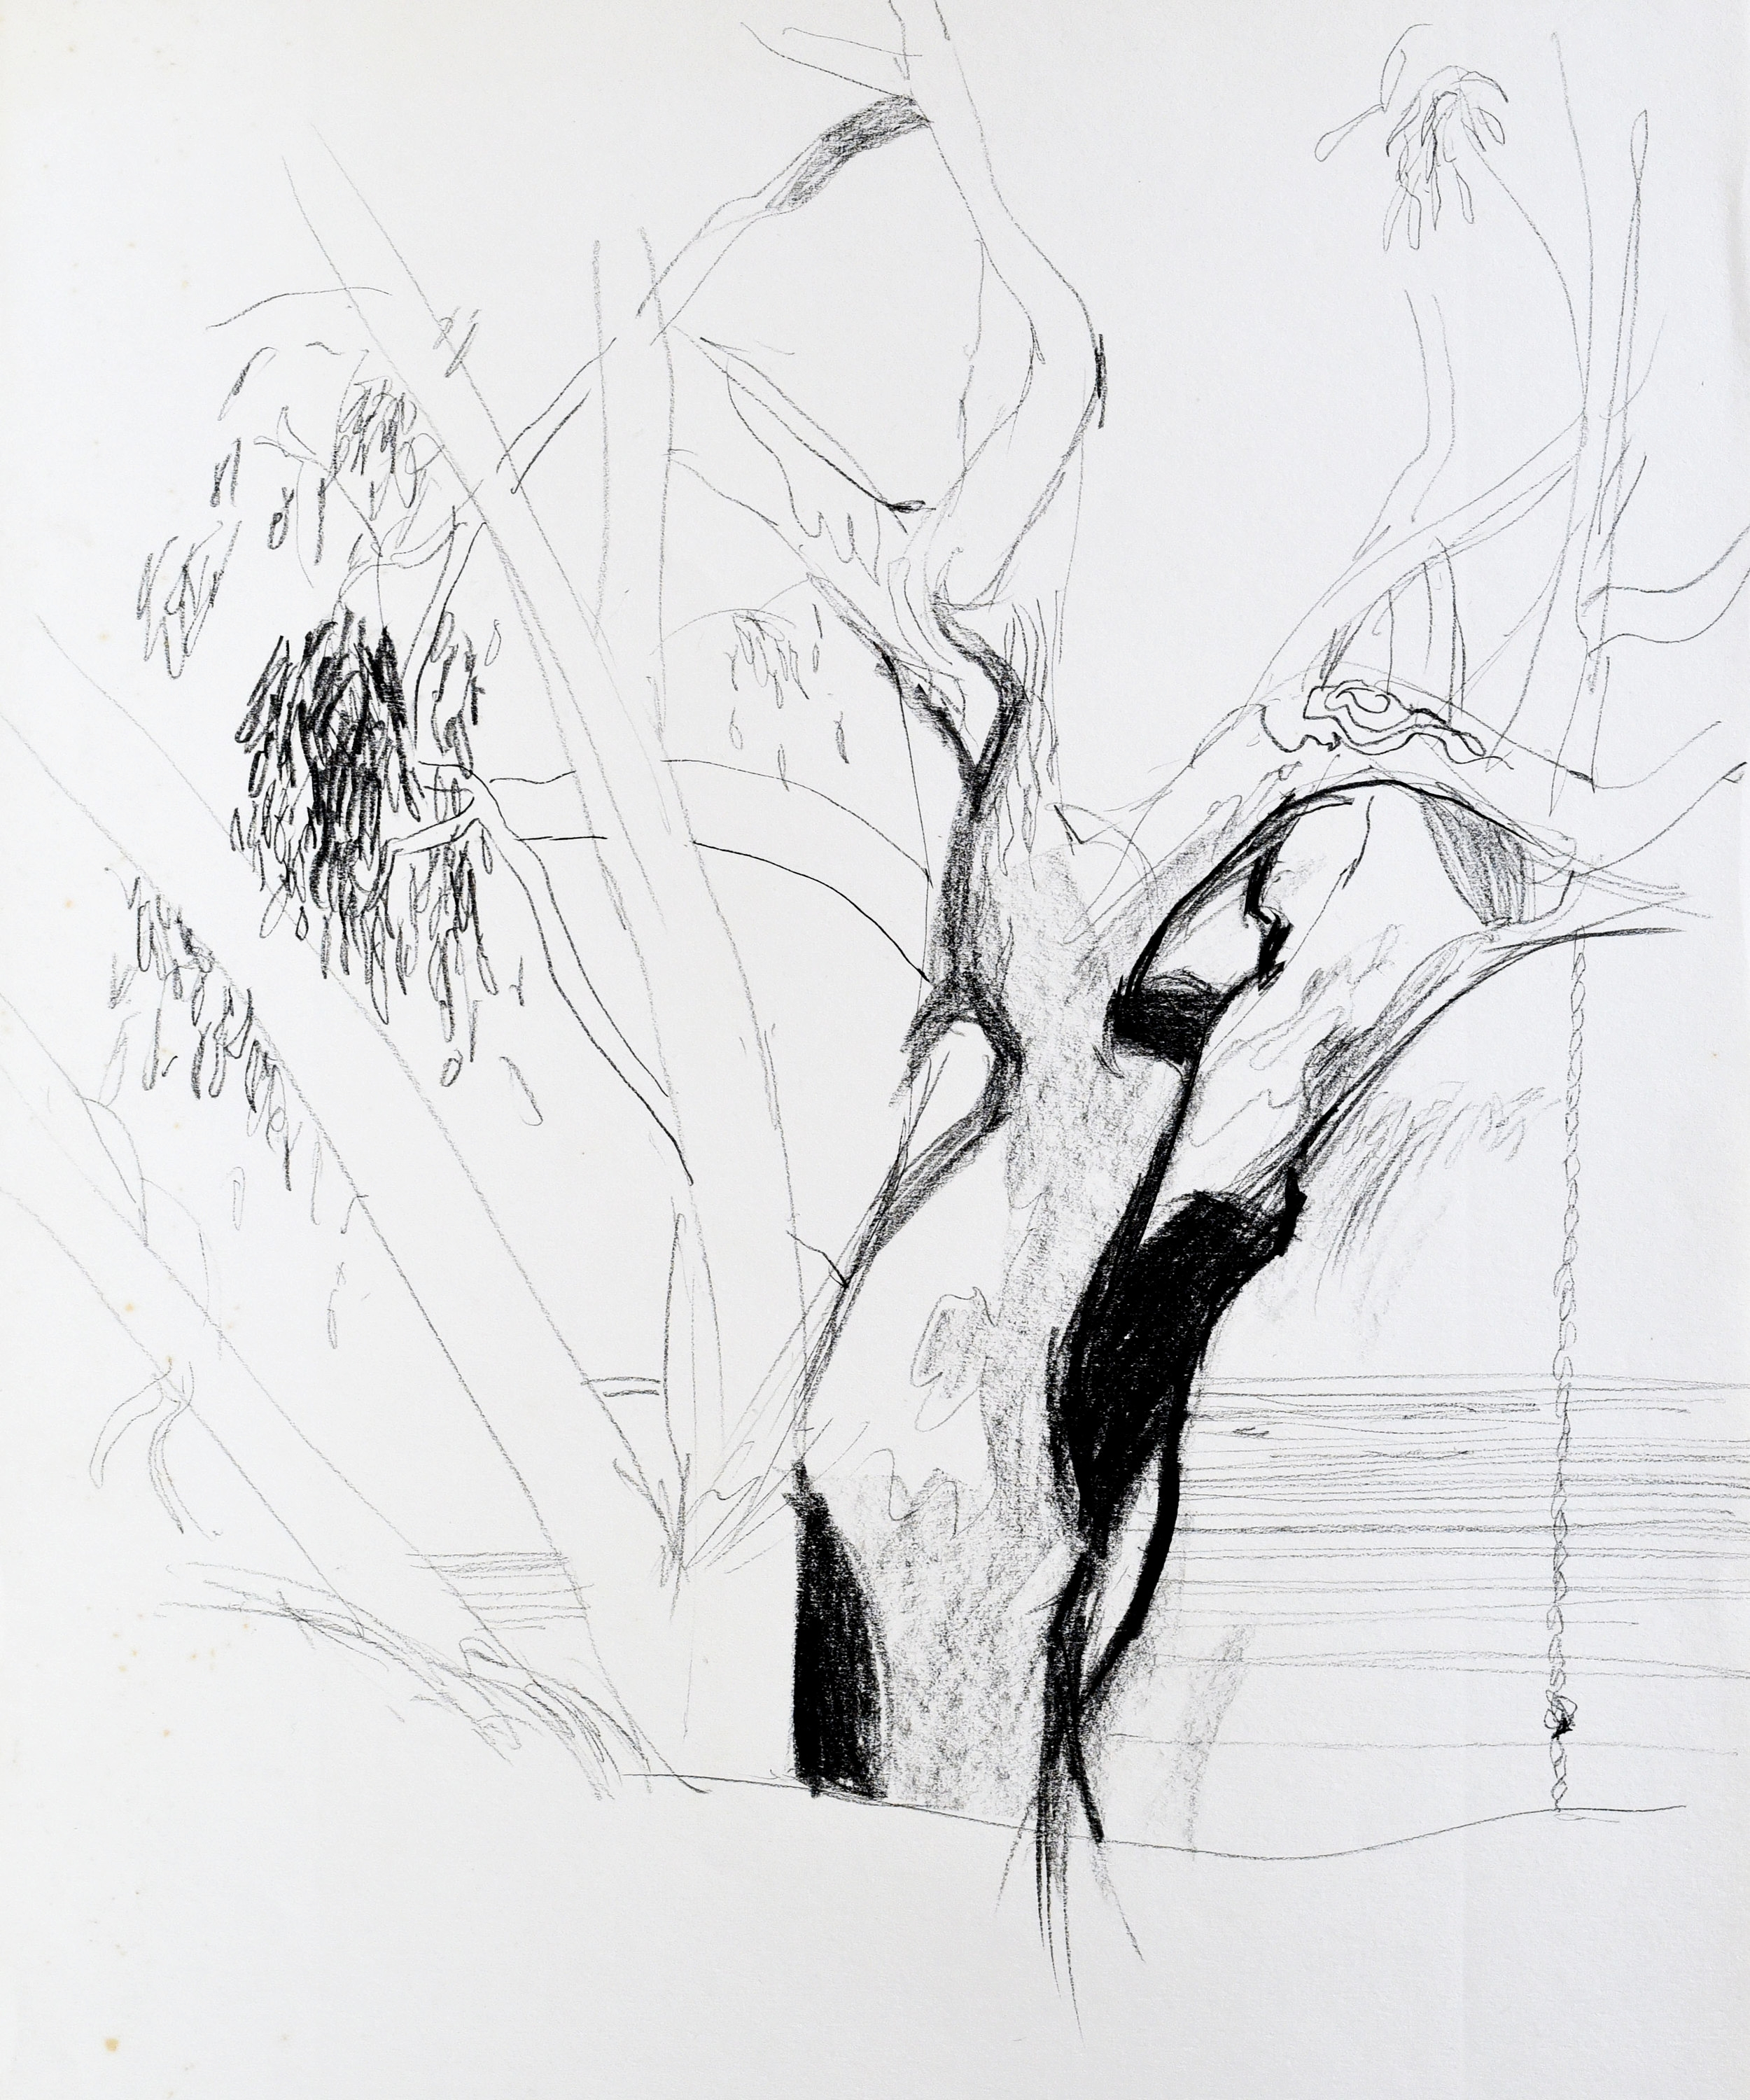 Drawing of a Murray River Gum in Australia using pencil and charcoal